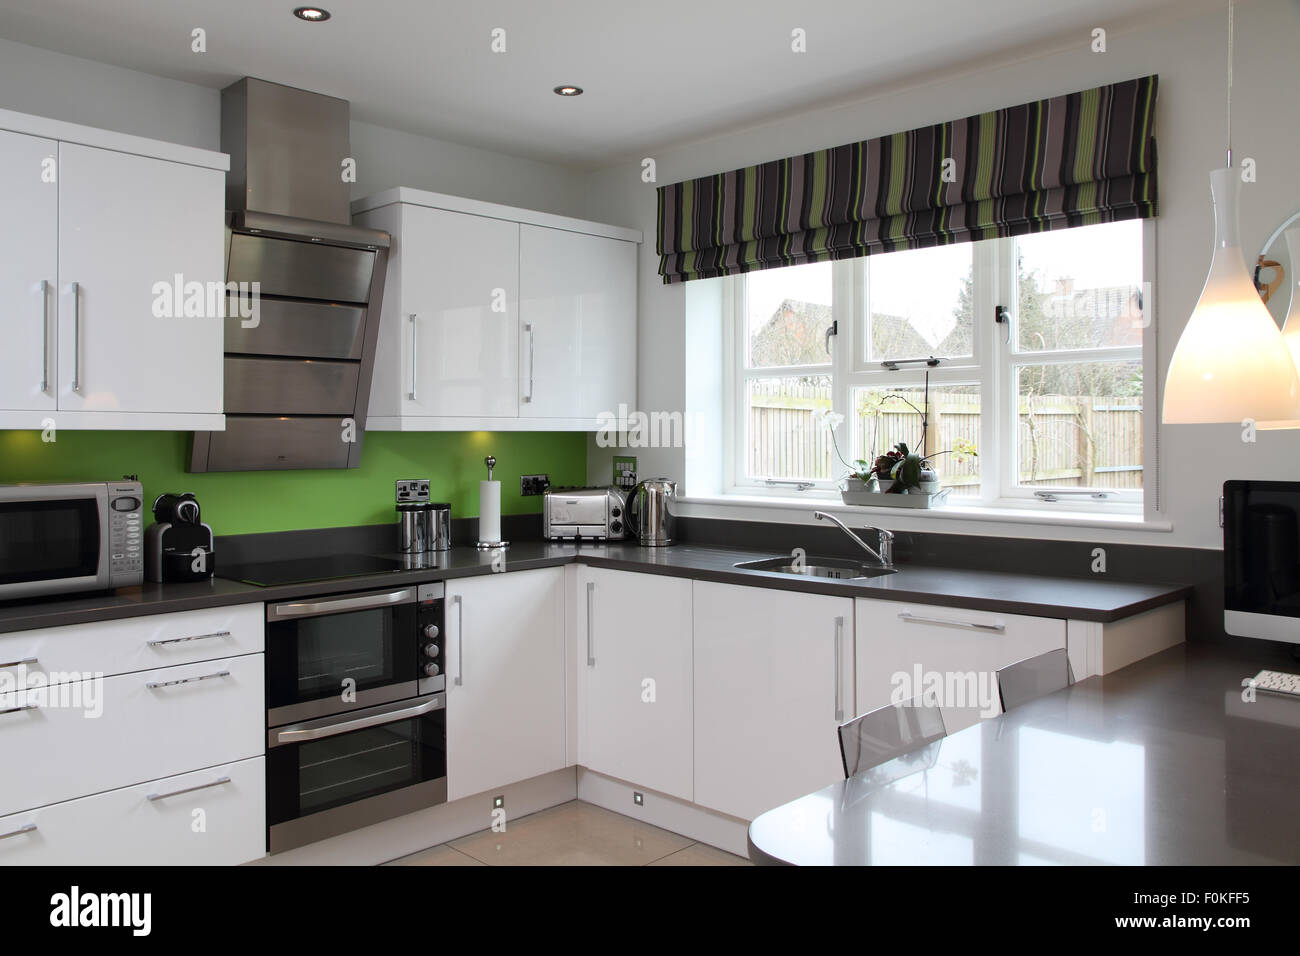 Black And White Modern Kitchen With Lime Green Splash Back